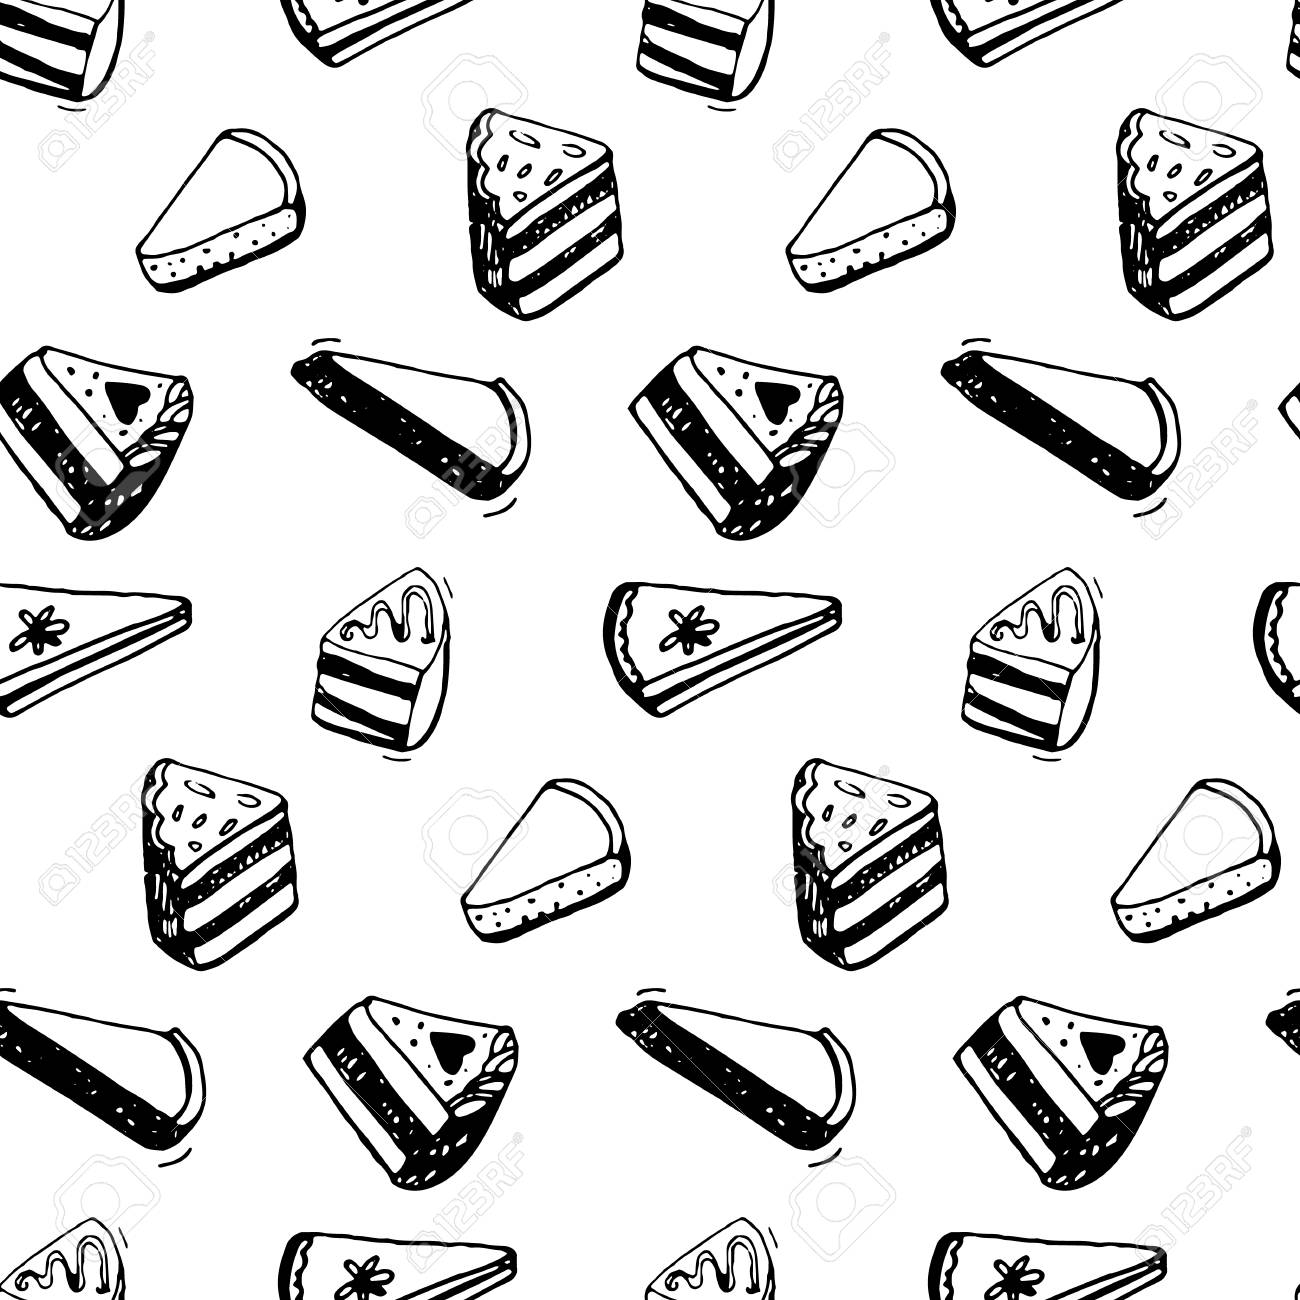 1300x1300 Piece Of Cake Pattern. Black Ink Sketch Drawing Of Desserts